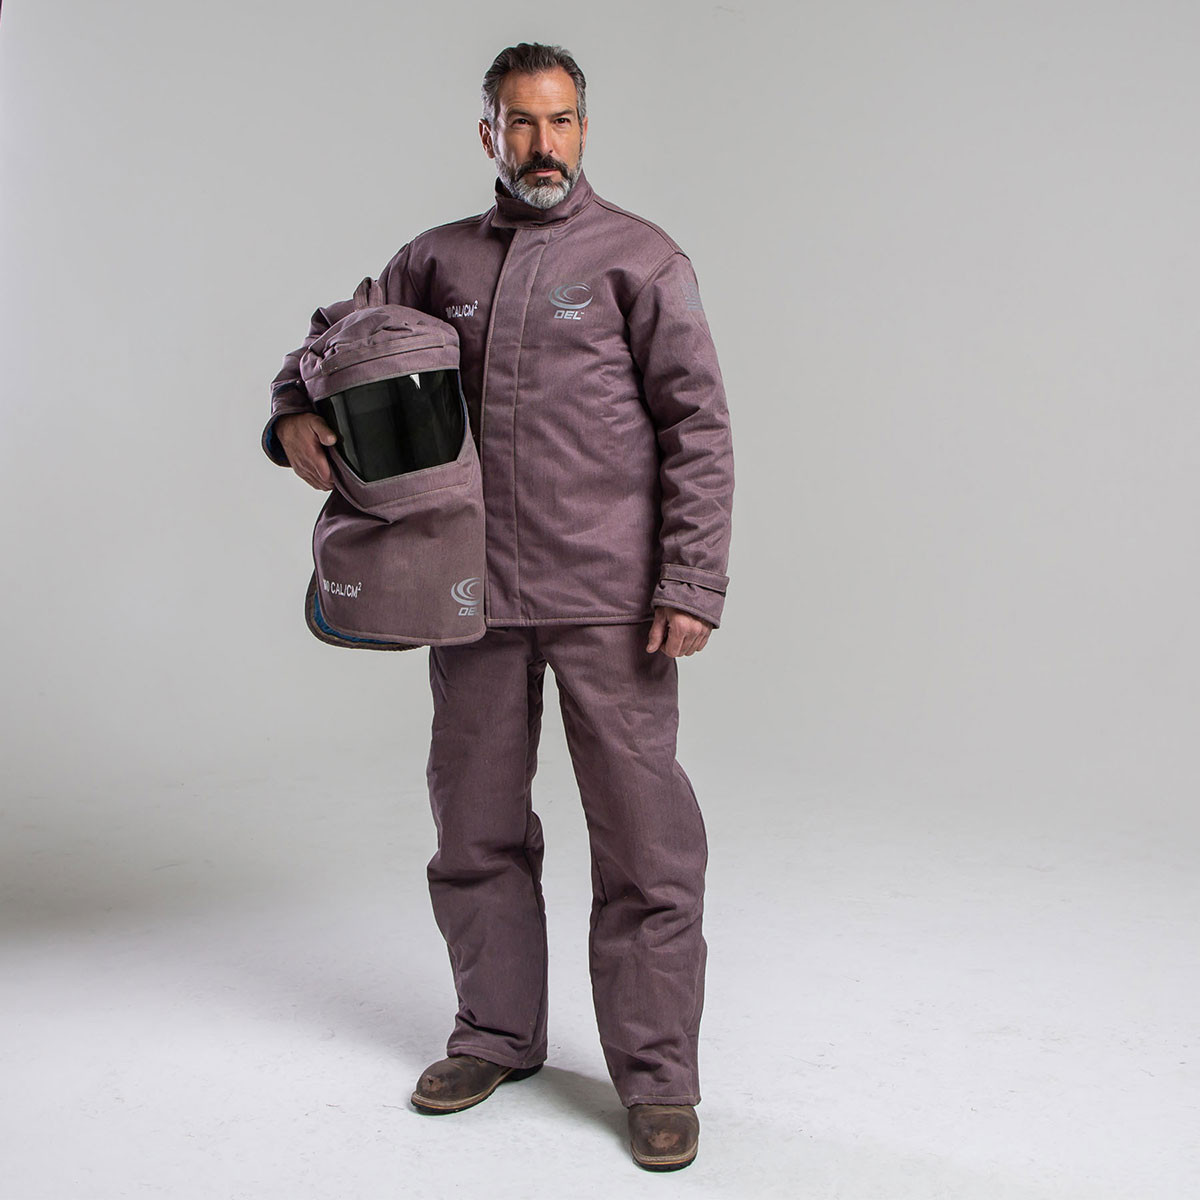 100 CAL Jacket and Bib Overalls Kit - (Without Gloves) with Switch Gear Hood w/ Dual Fan Units